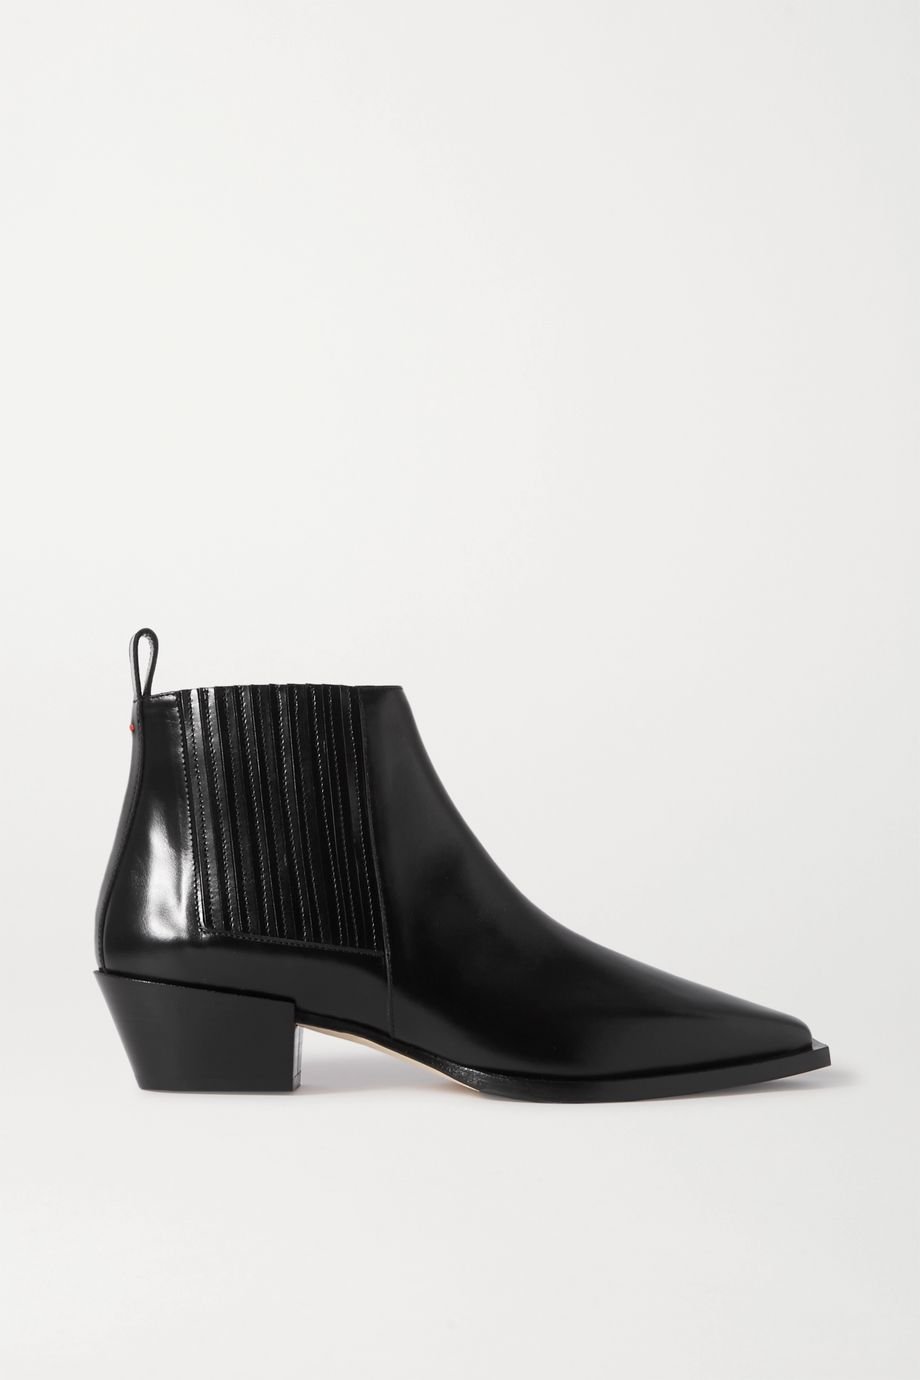 aeydē Bea leather ankle boots